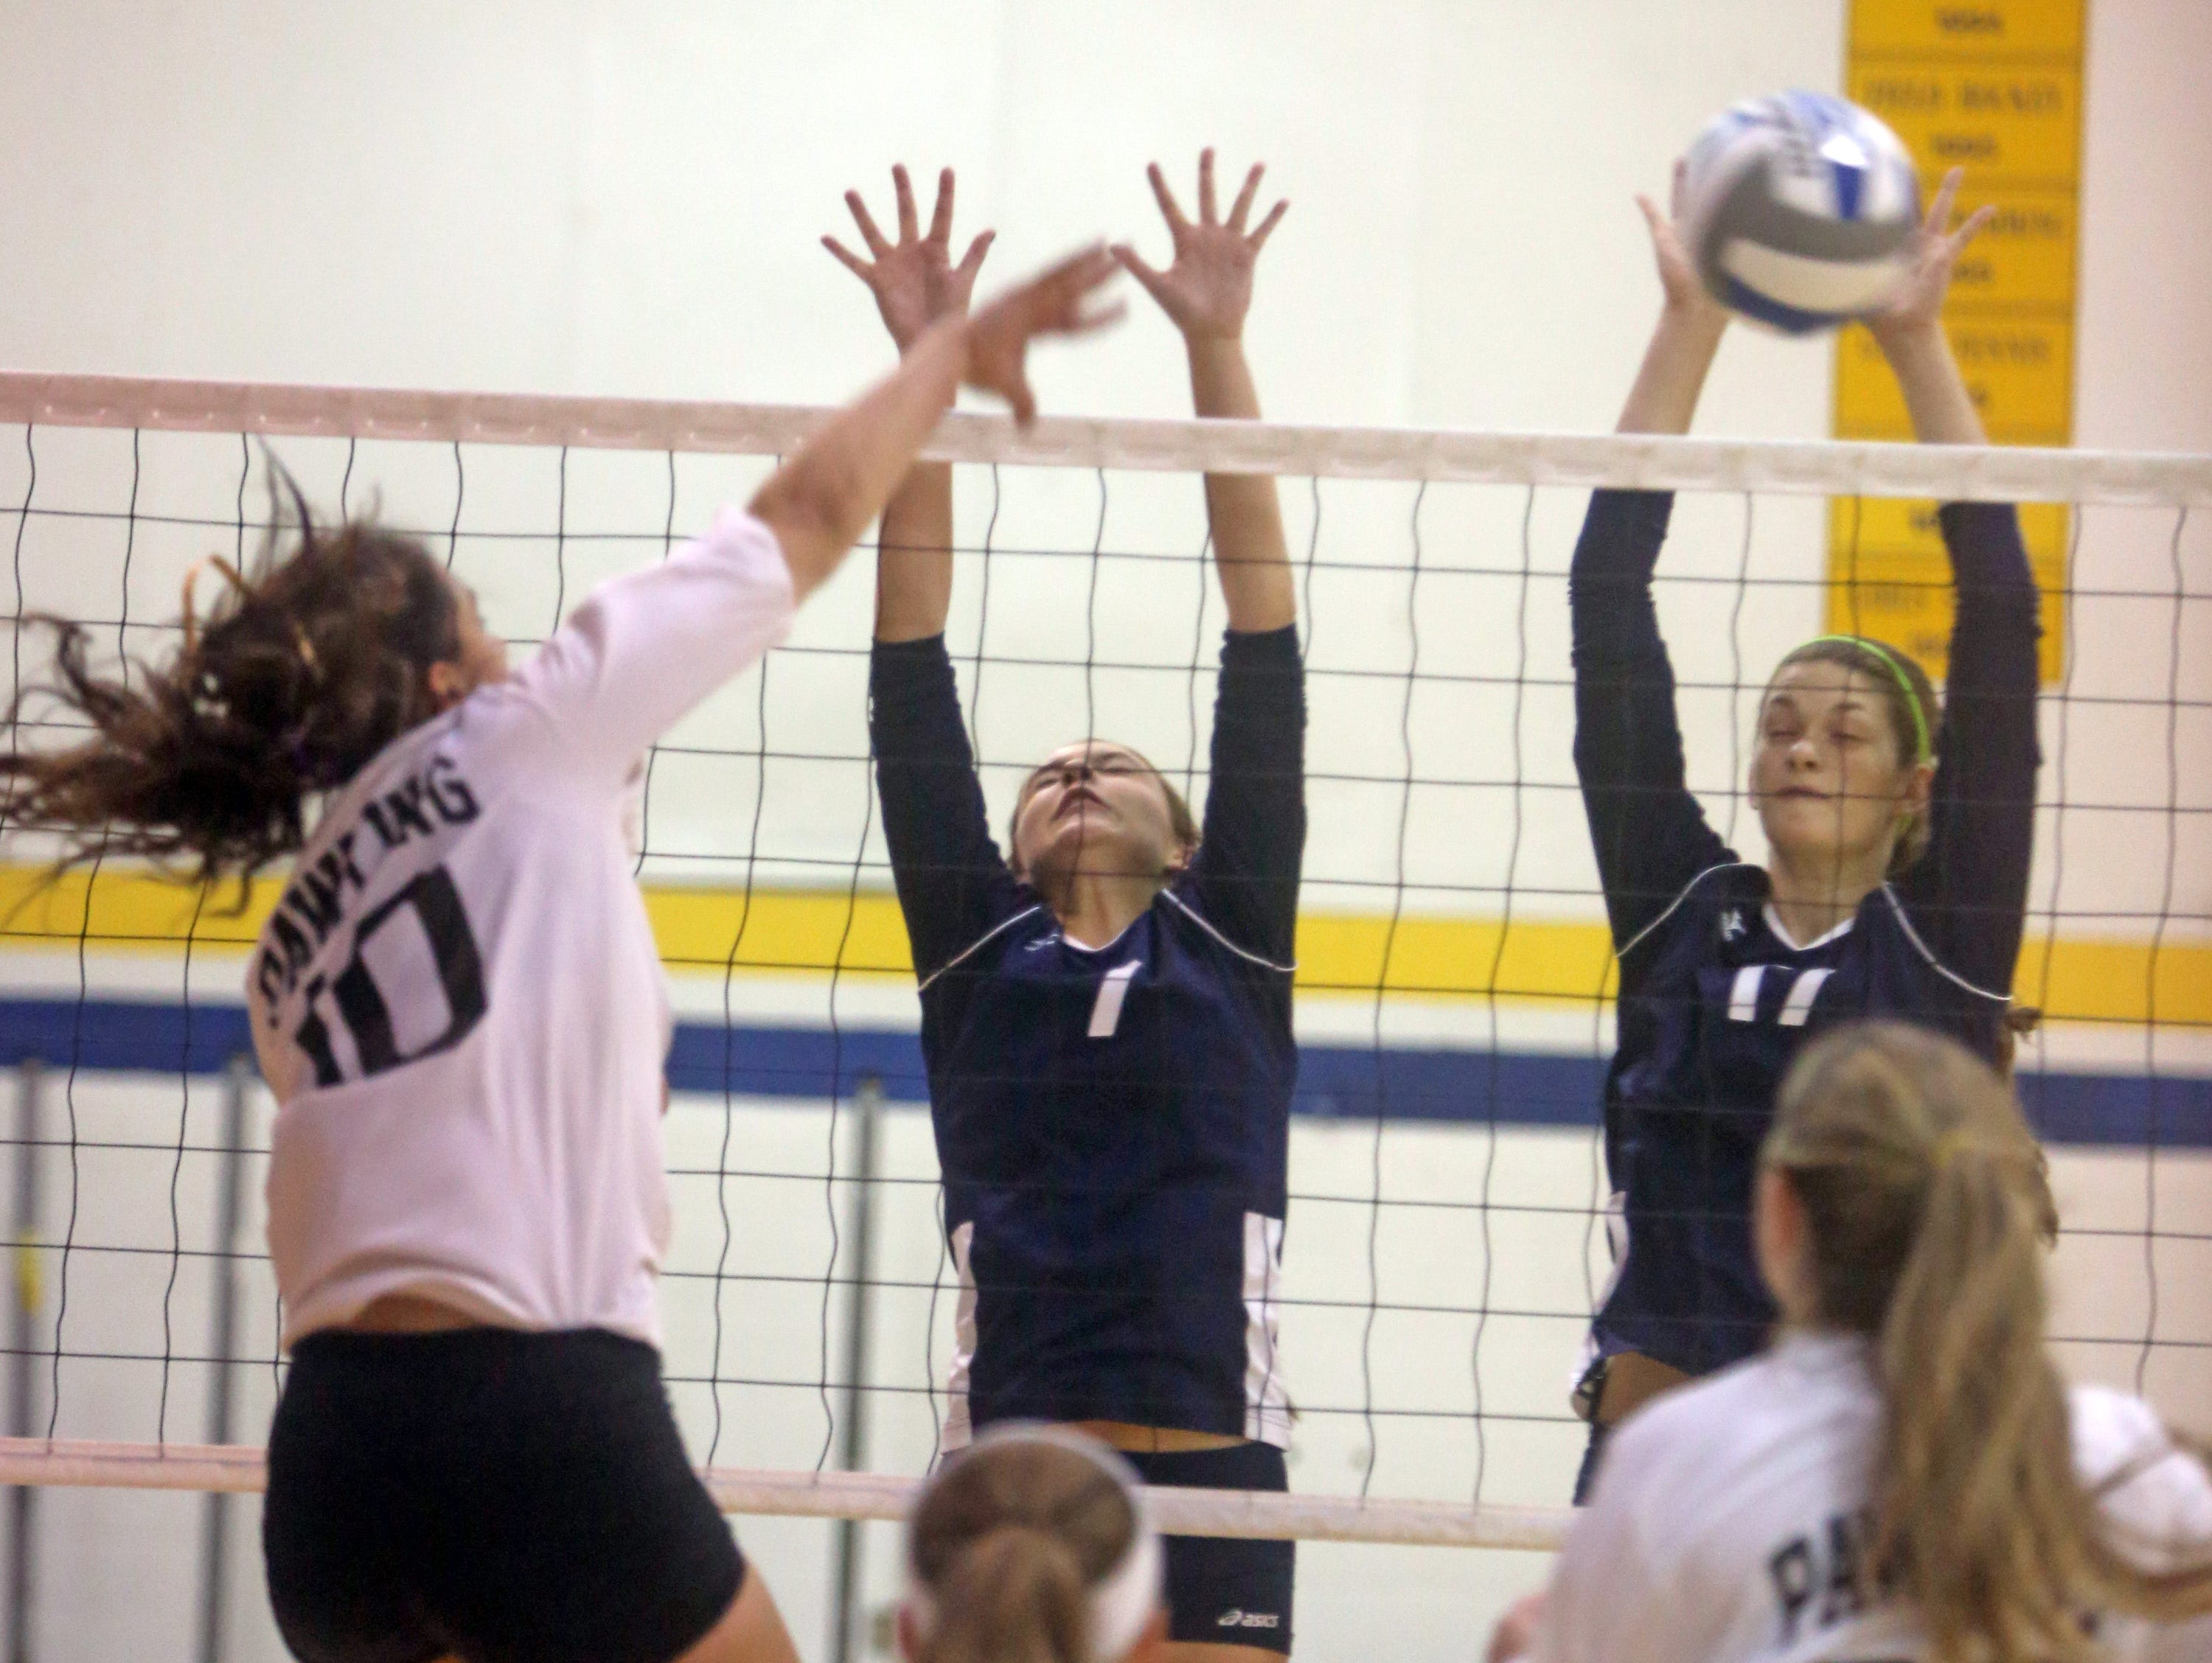 Suffern battled Pawling during the 12th Annual Panther Invitational Volleyball Tournament at Walter Panas High School in Cortlandt Manor Oct. 24, 2015.